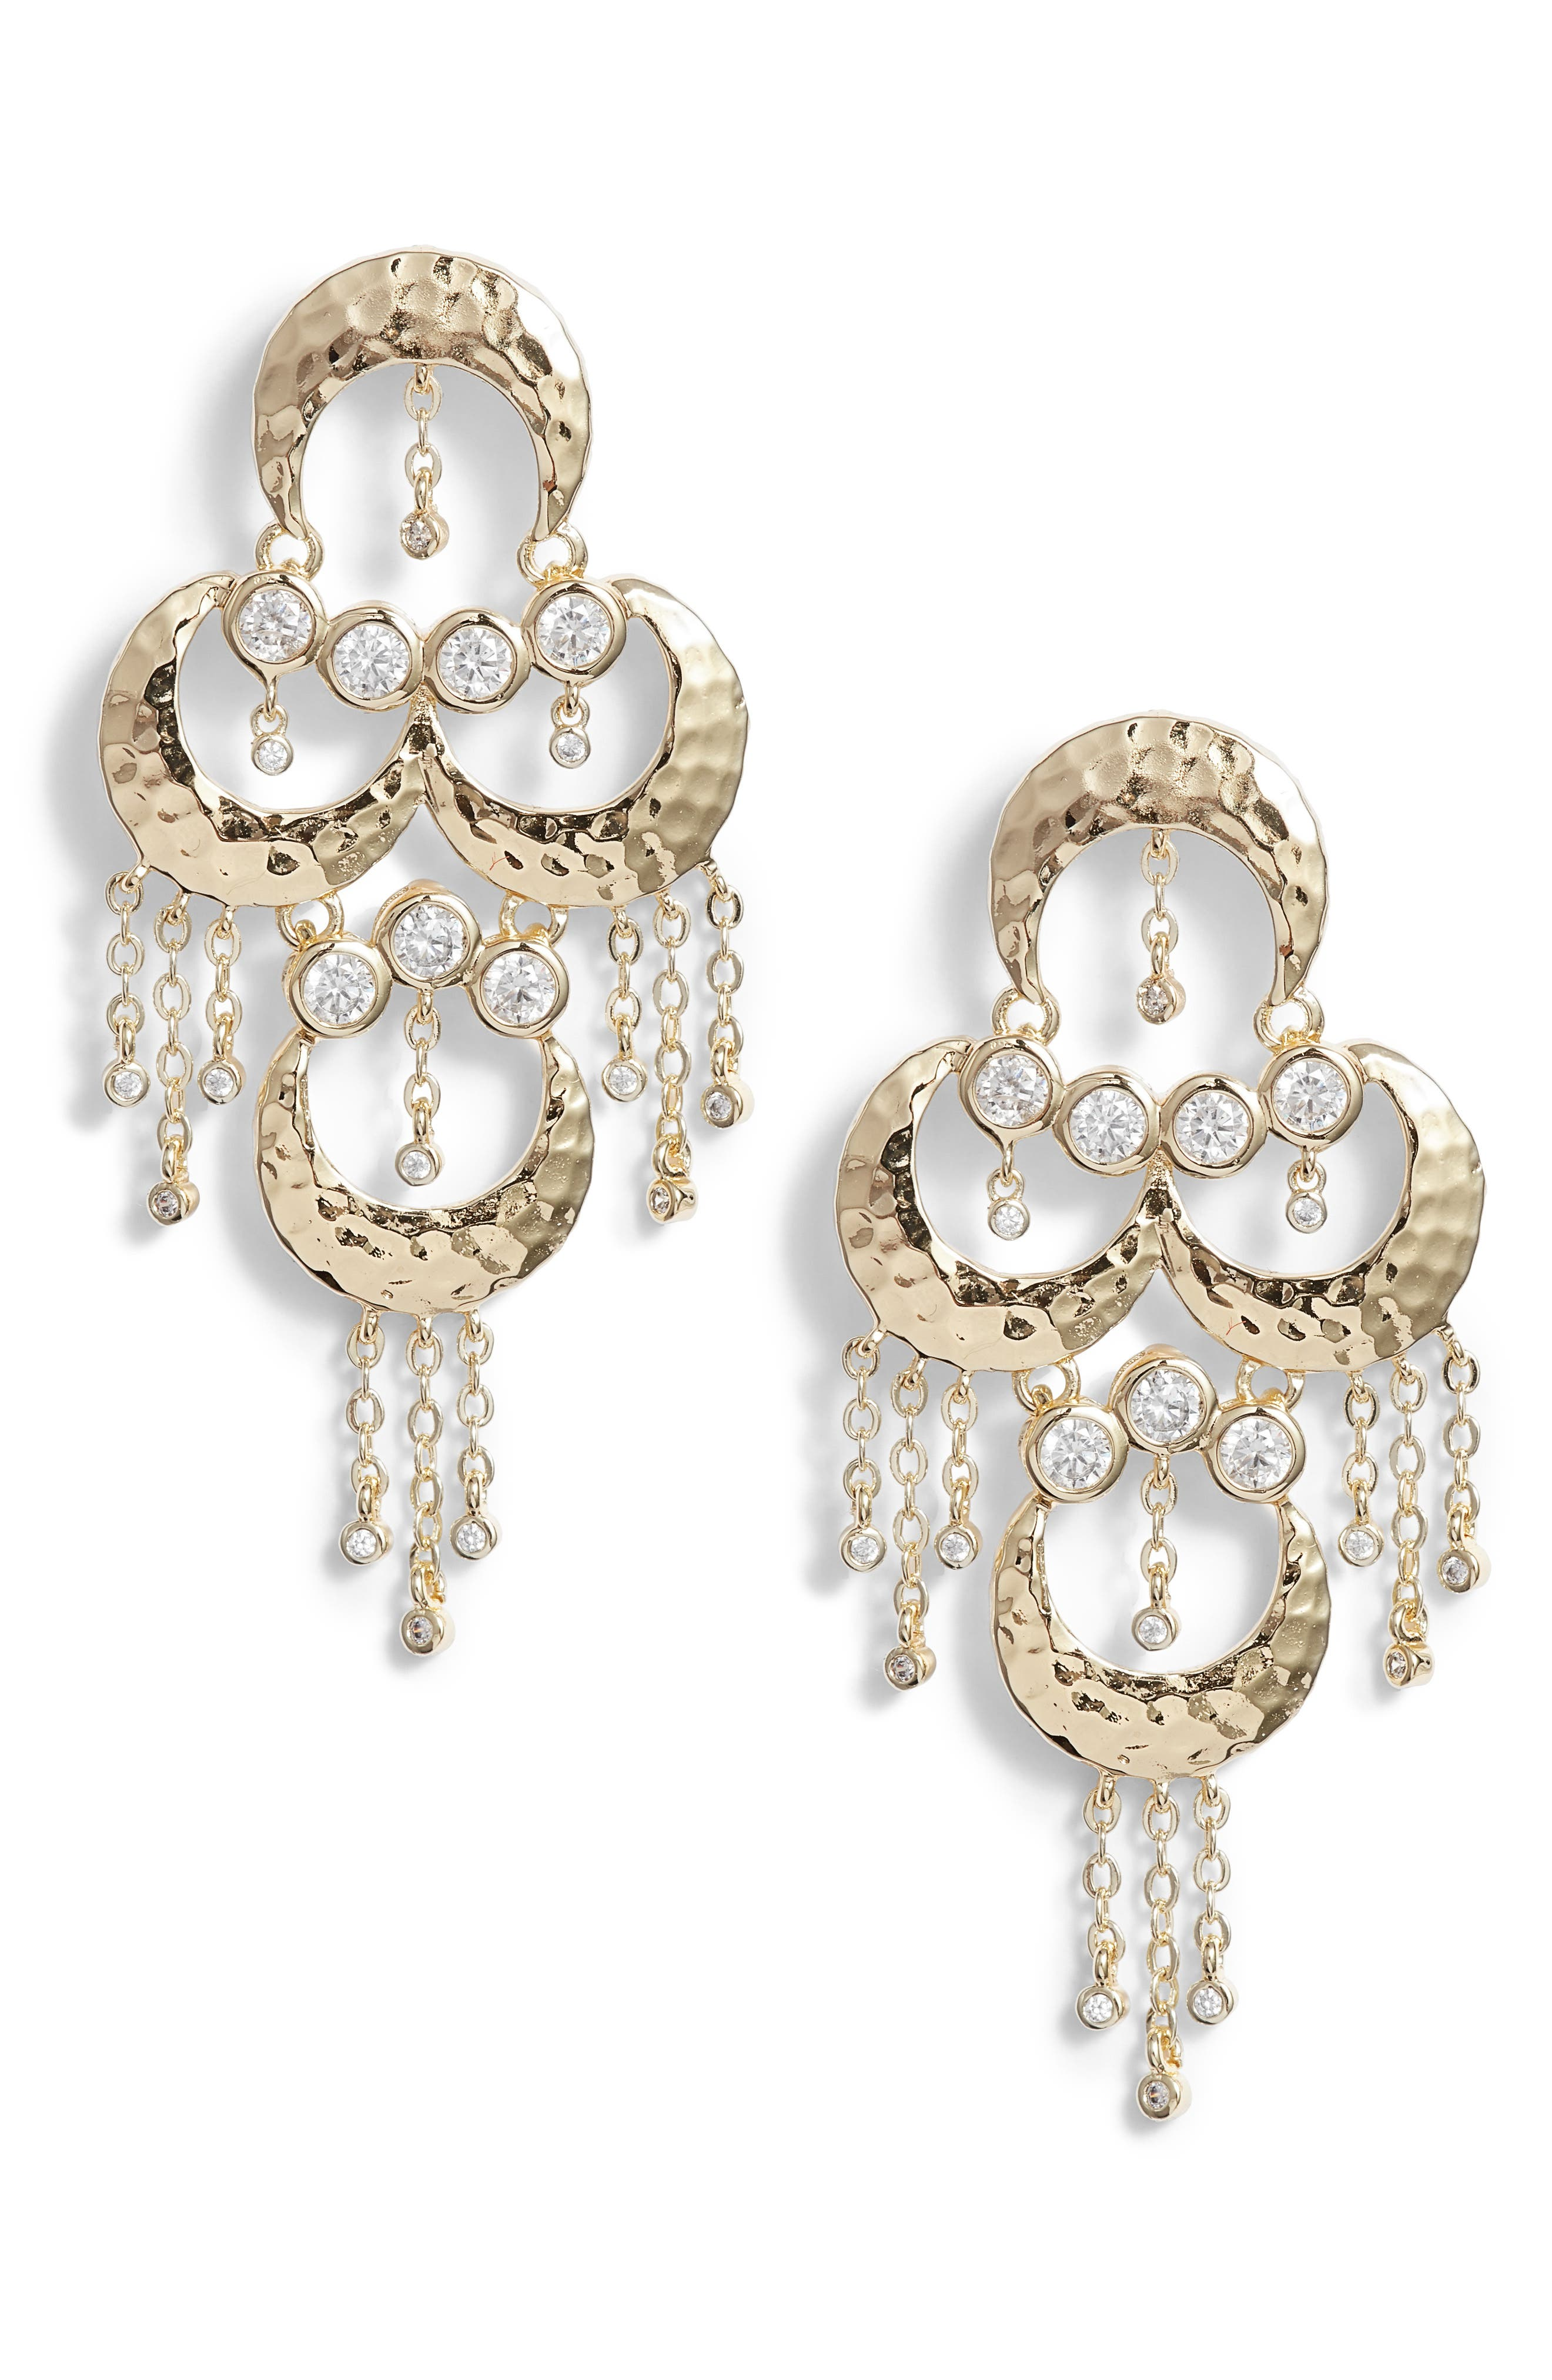 Tran Baby Chandelier Earrings,                         Main,                         color, Gold/ White Cz